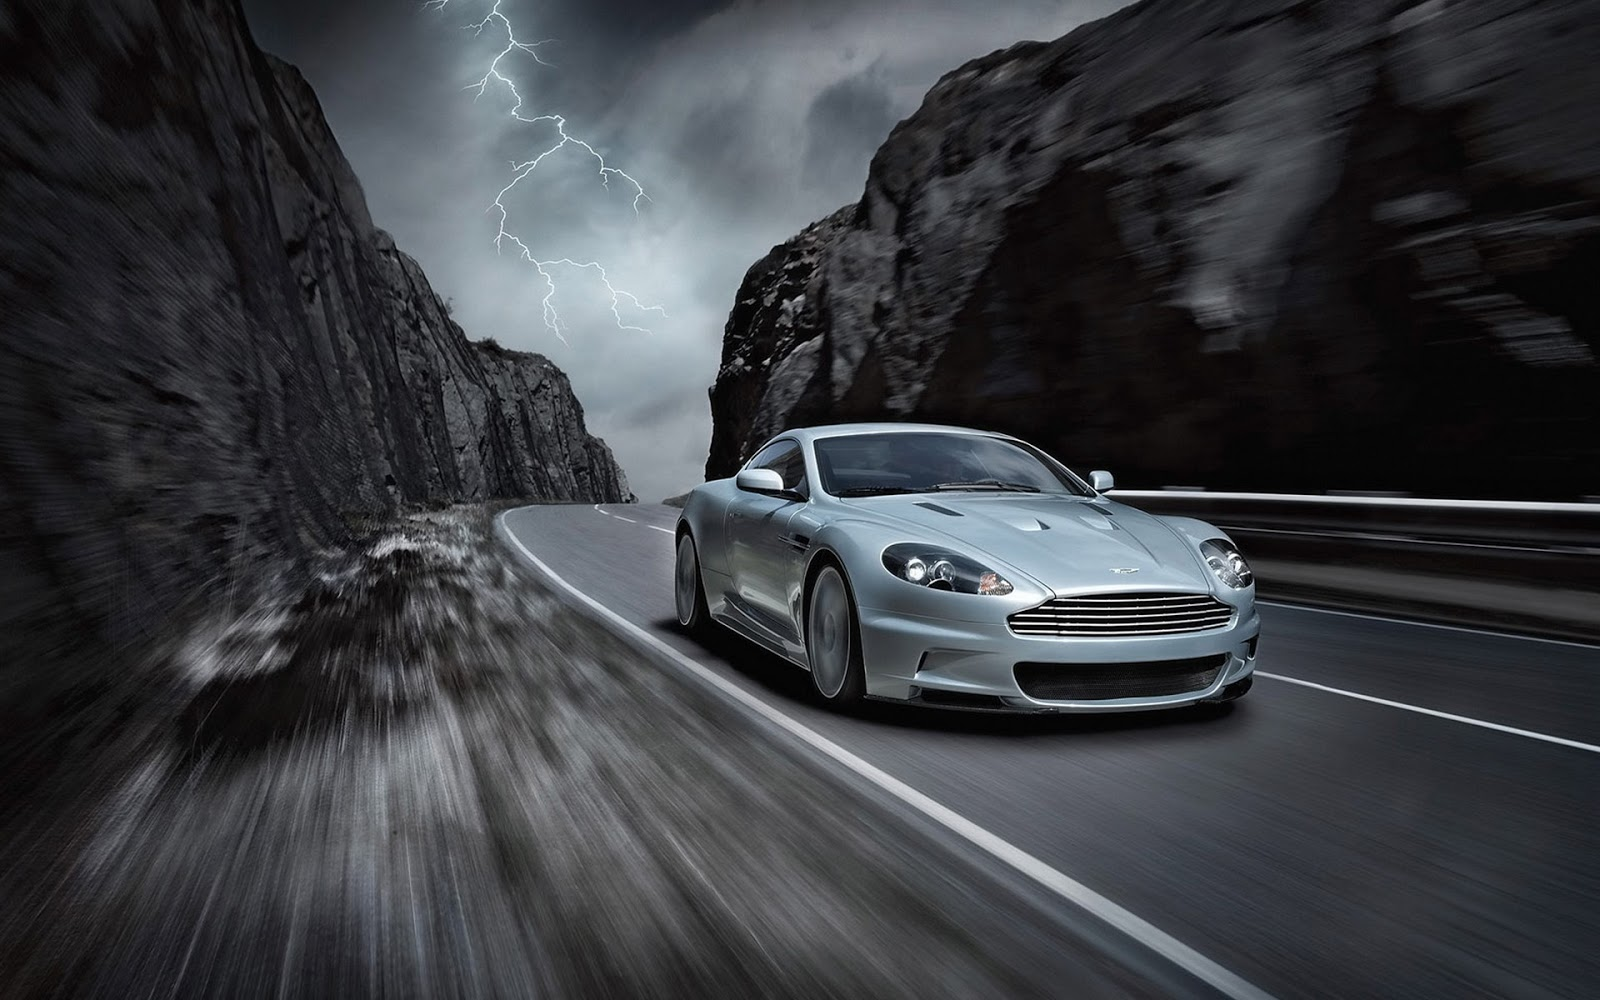 Silver Car Wallpapers